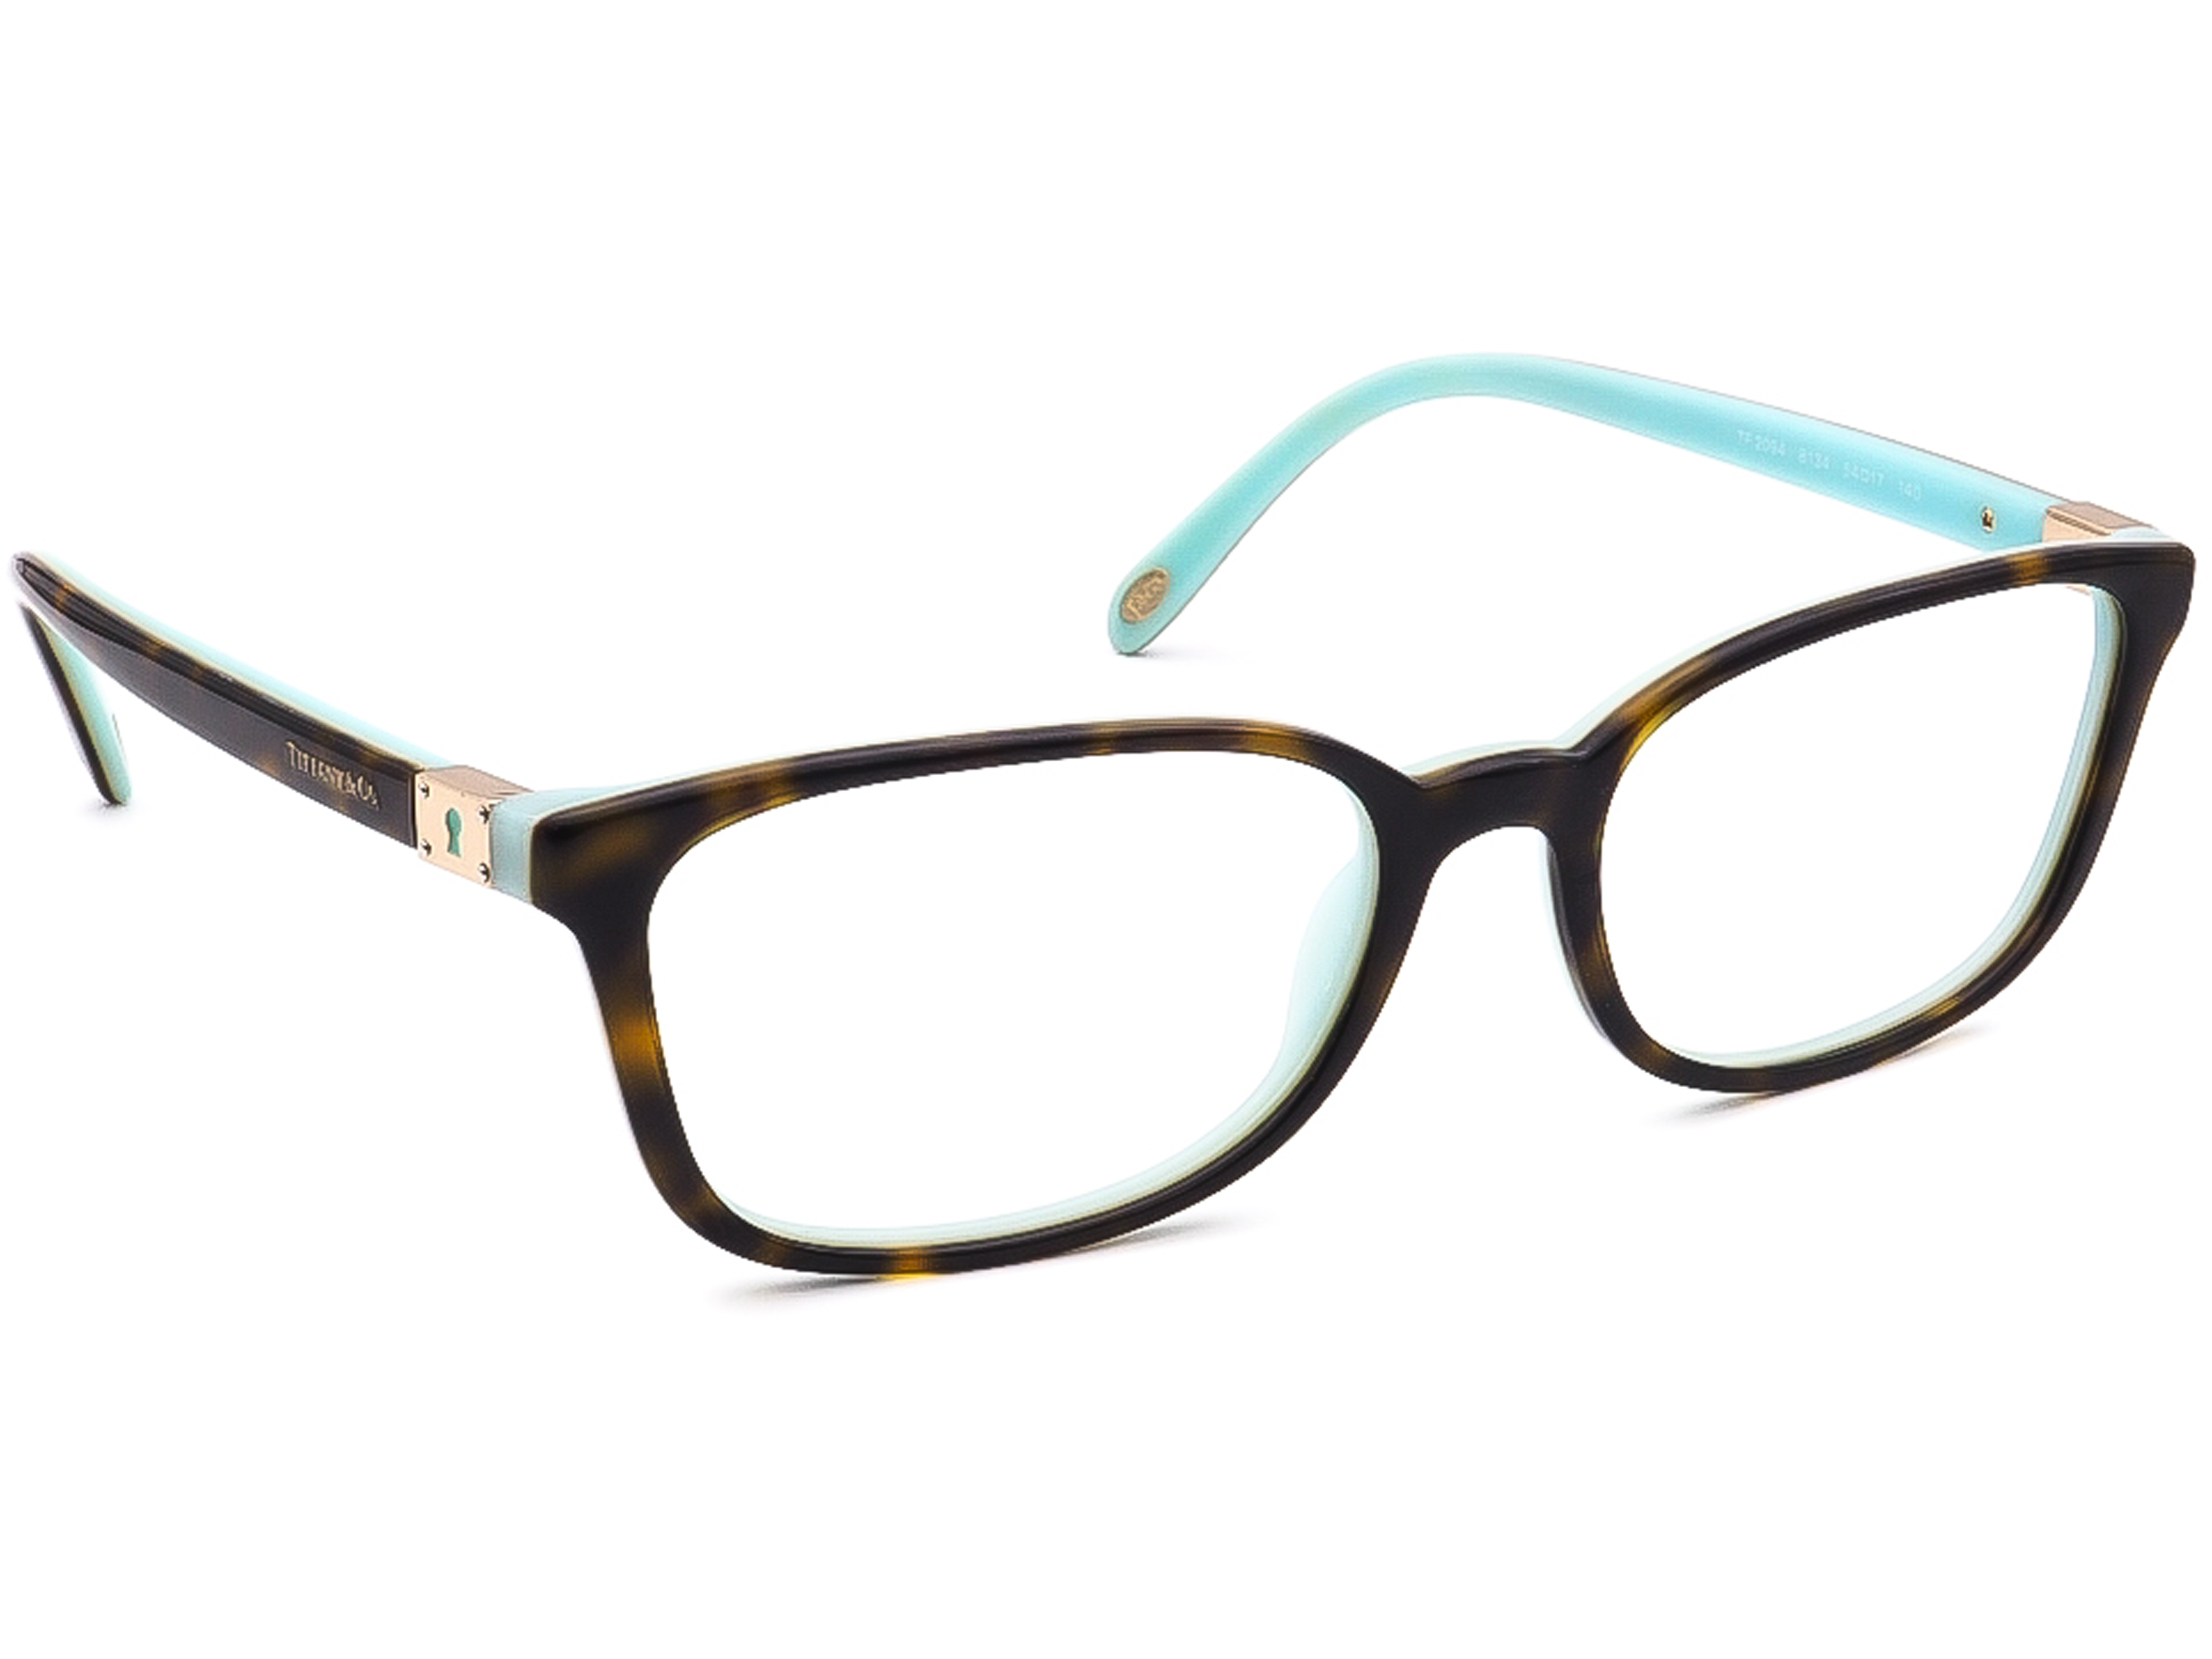 Tiffany & Co. TF 2094 8134 Eyeglasses